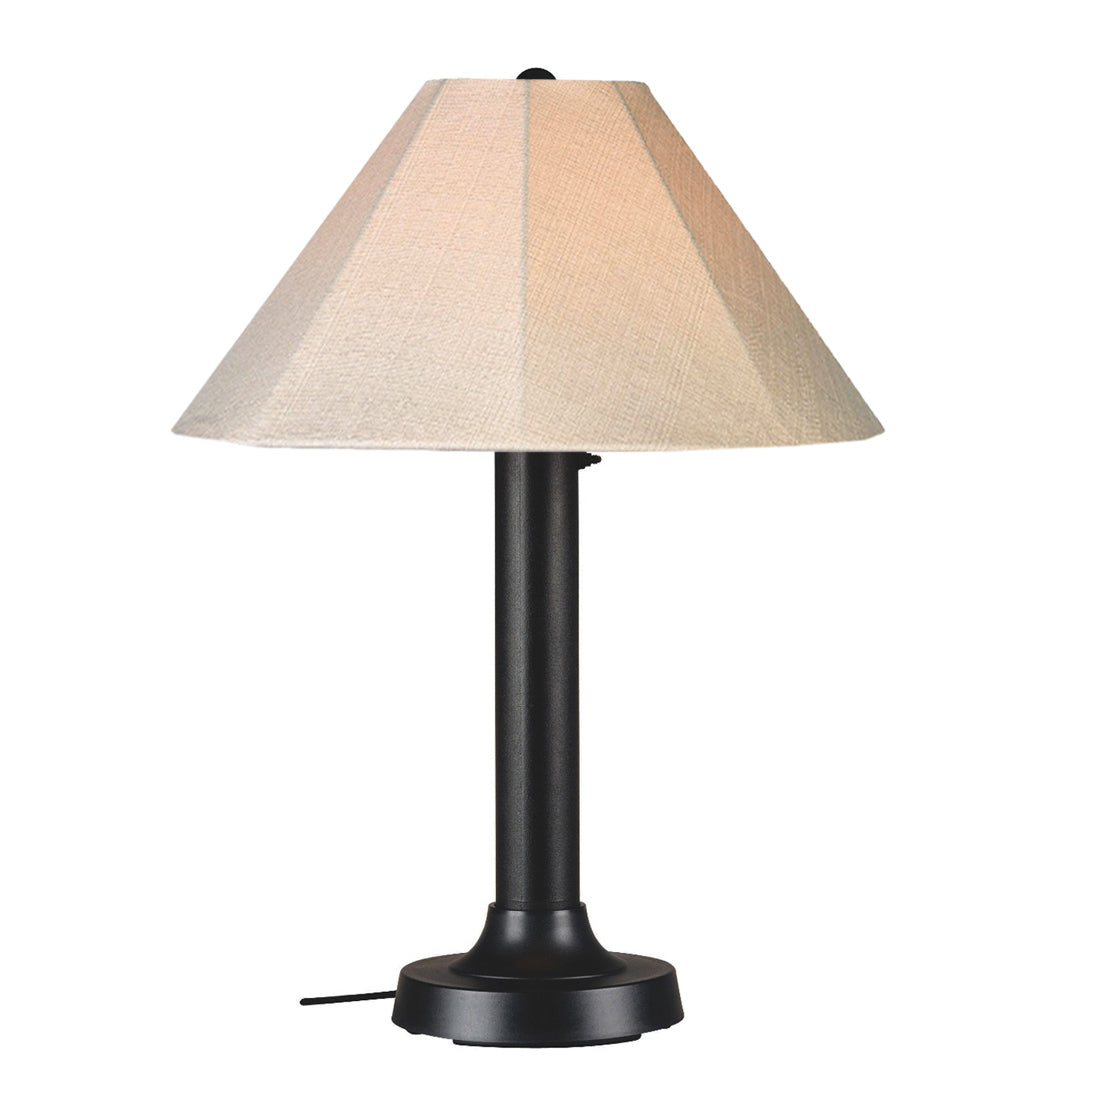 "Seaside Table Lamp 20610 with 3"" black body and antique beige linen Sunbrella shade fabric"